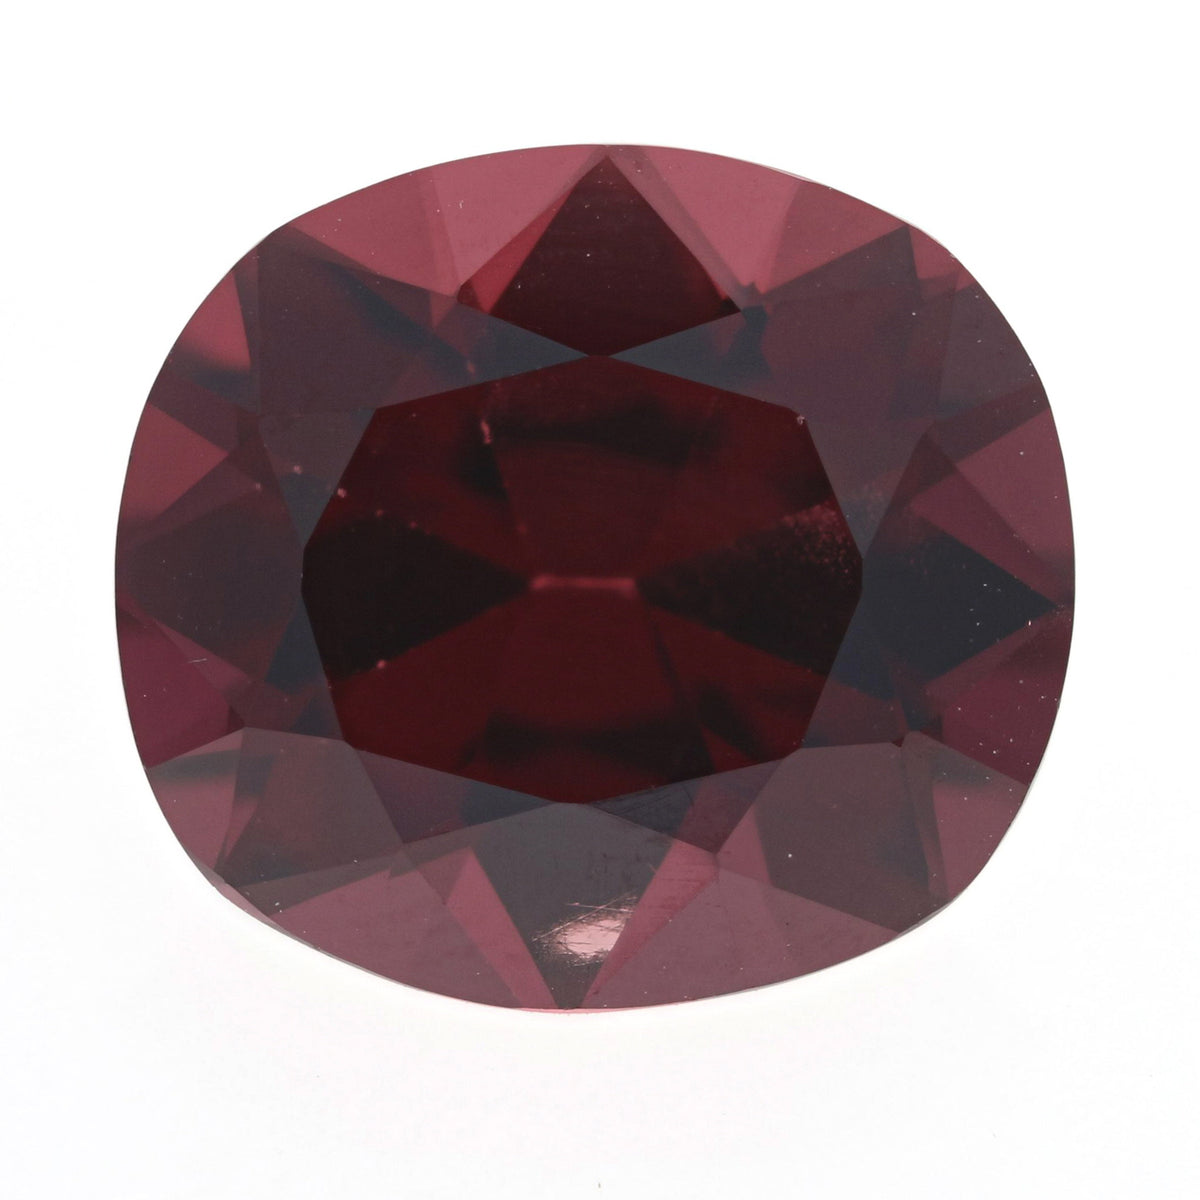 5.04ct Loose Spinel Cushion